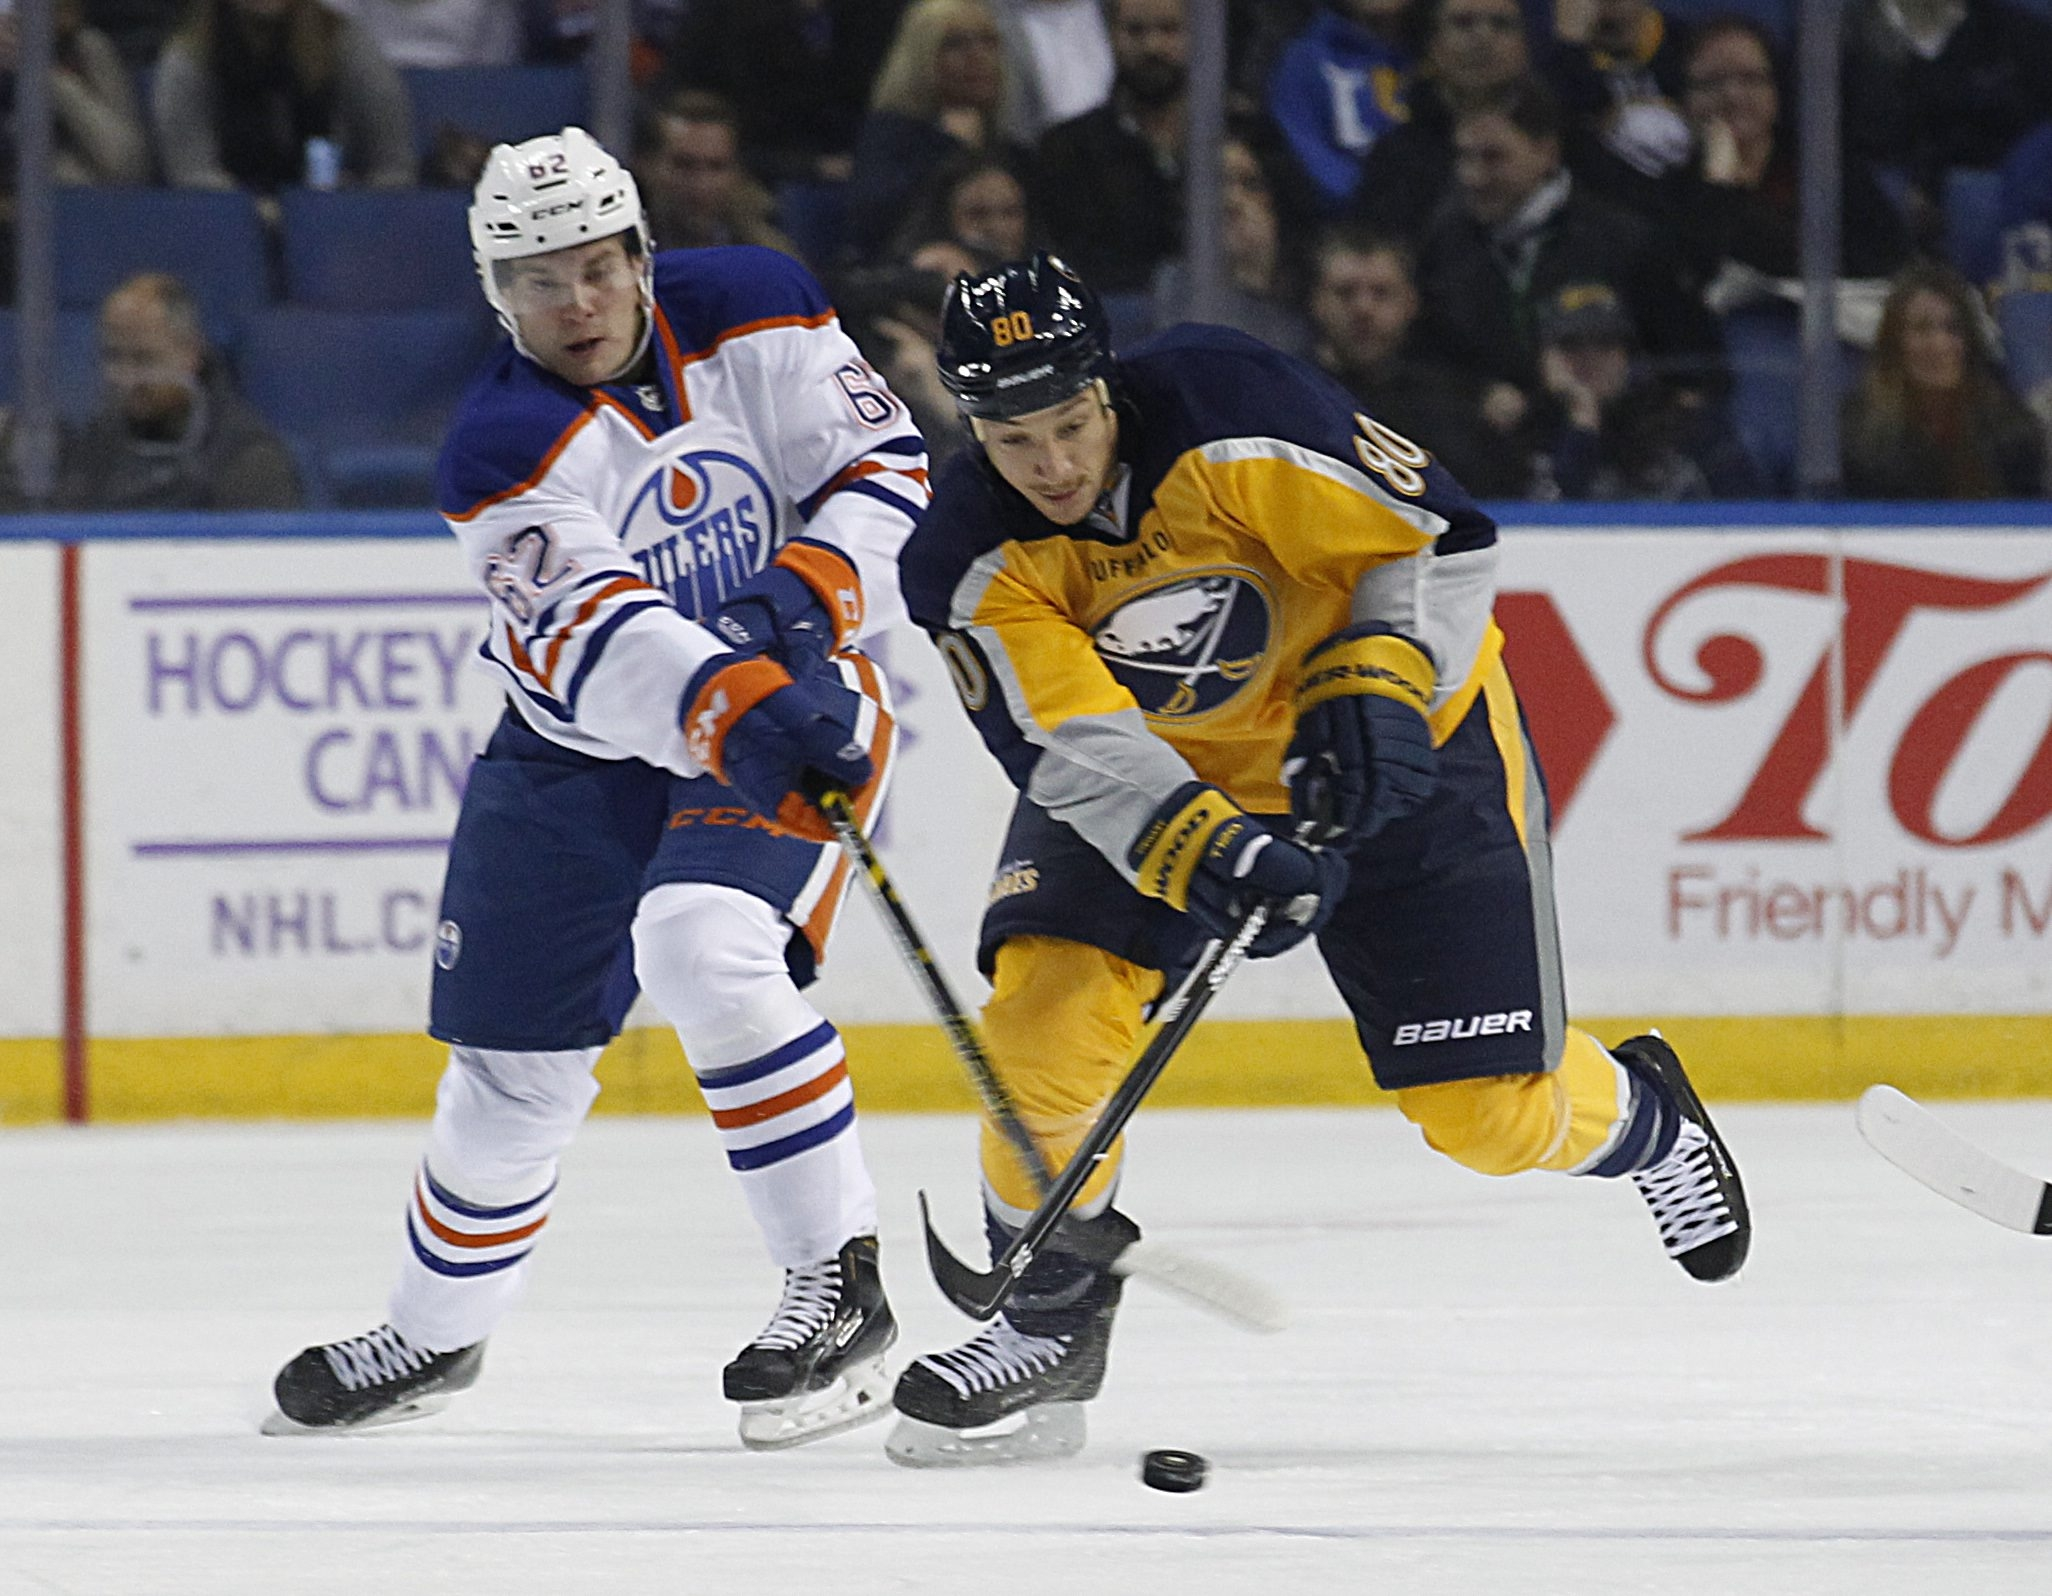 Letter writer suggests the Sabres reacquire Chris Stewart and put him on a line with Sam Reinhart and Evander Kane.